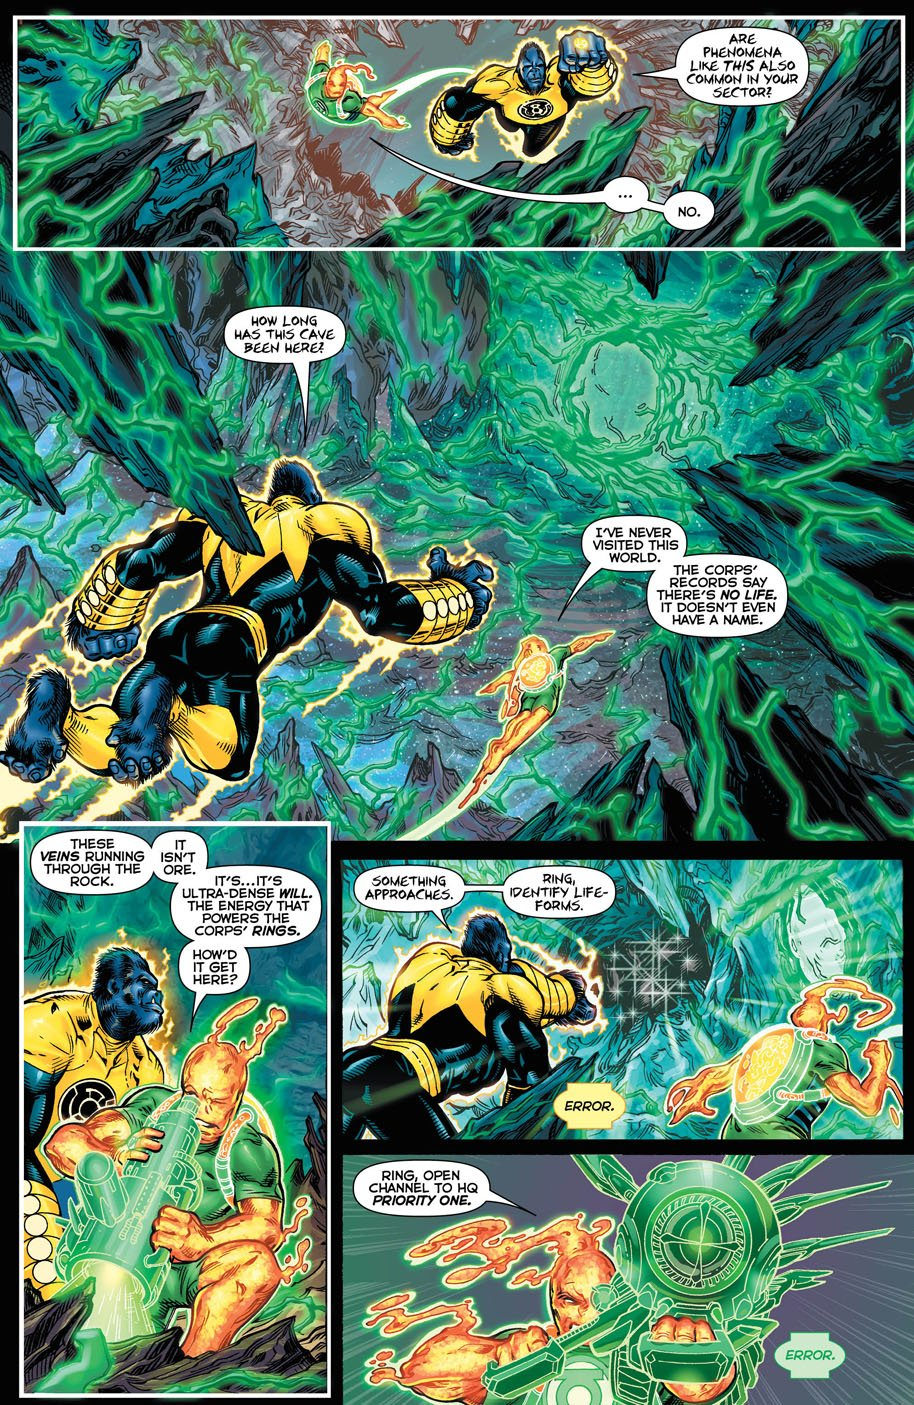 Hal Jordan and the Green Lantern Corps 18 page 3